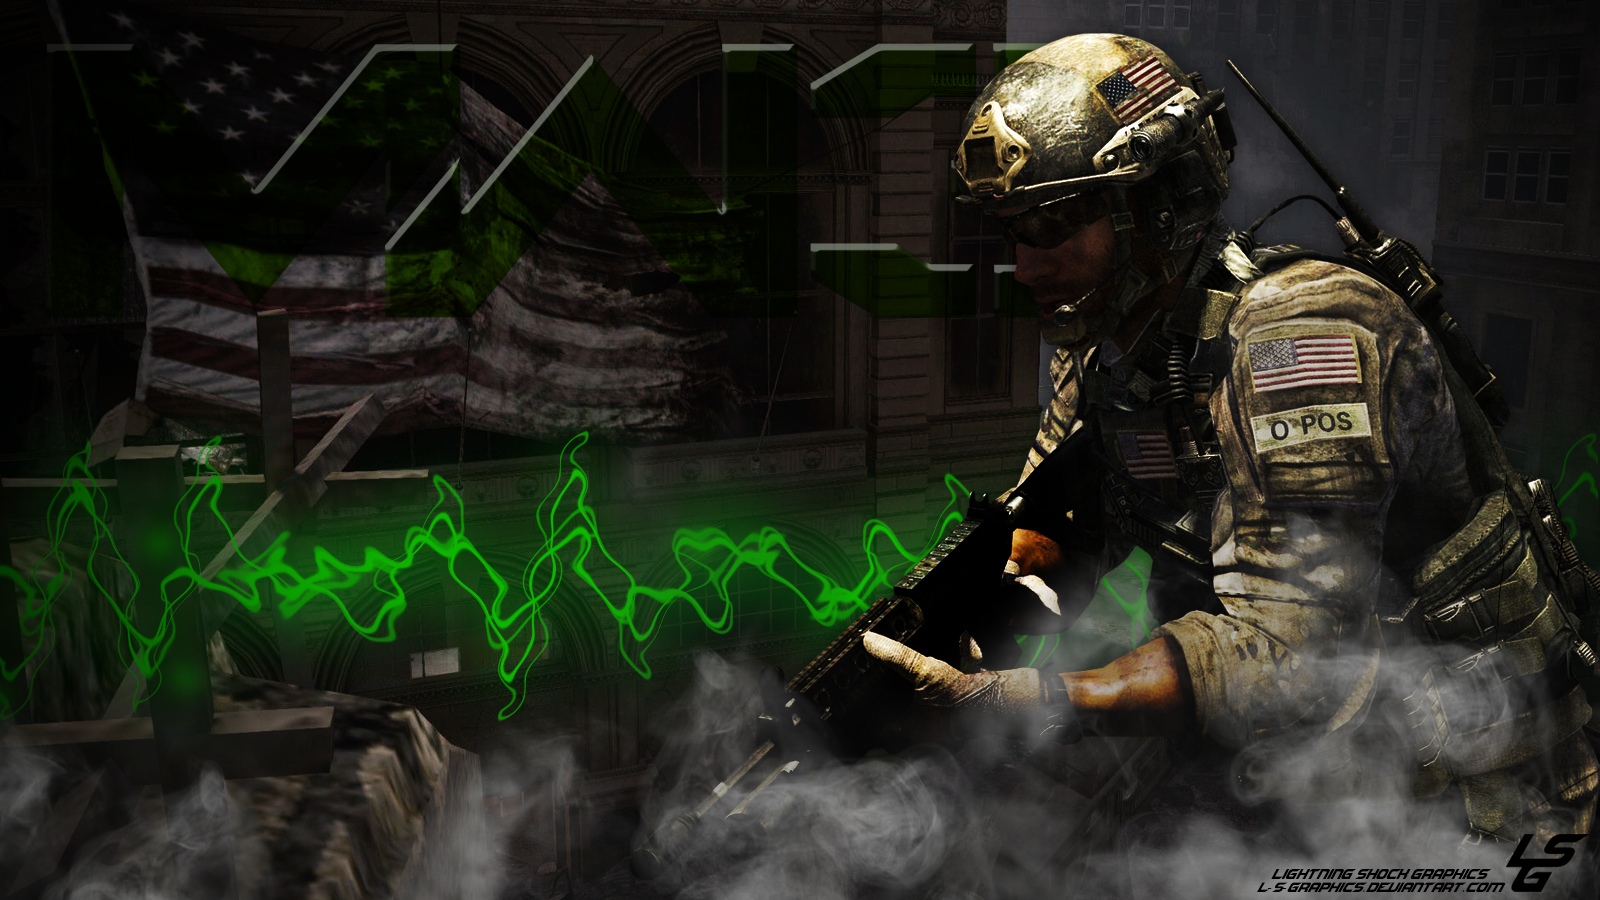 Call Of Duty Mw3 Desktop Wallpaper By L S Graphics On Deviantart